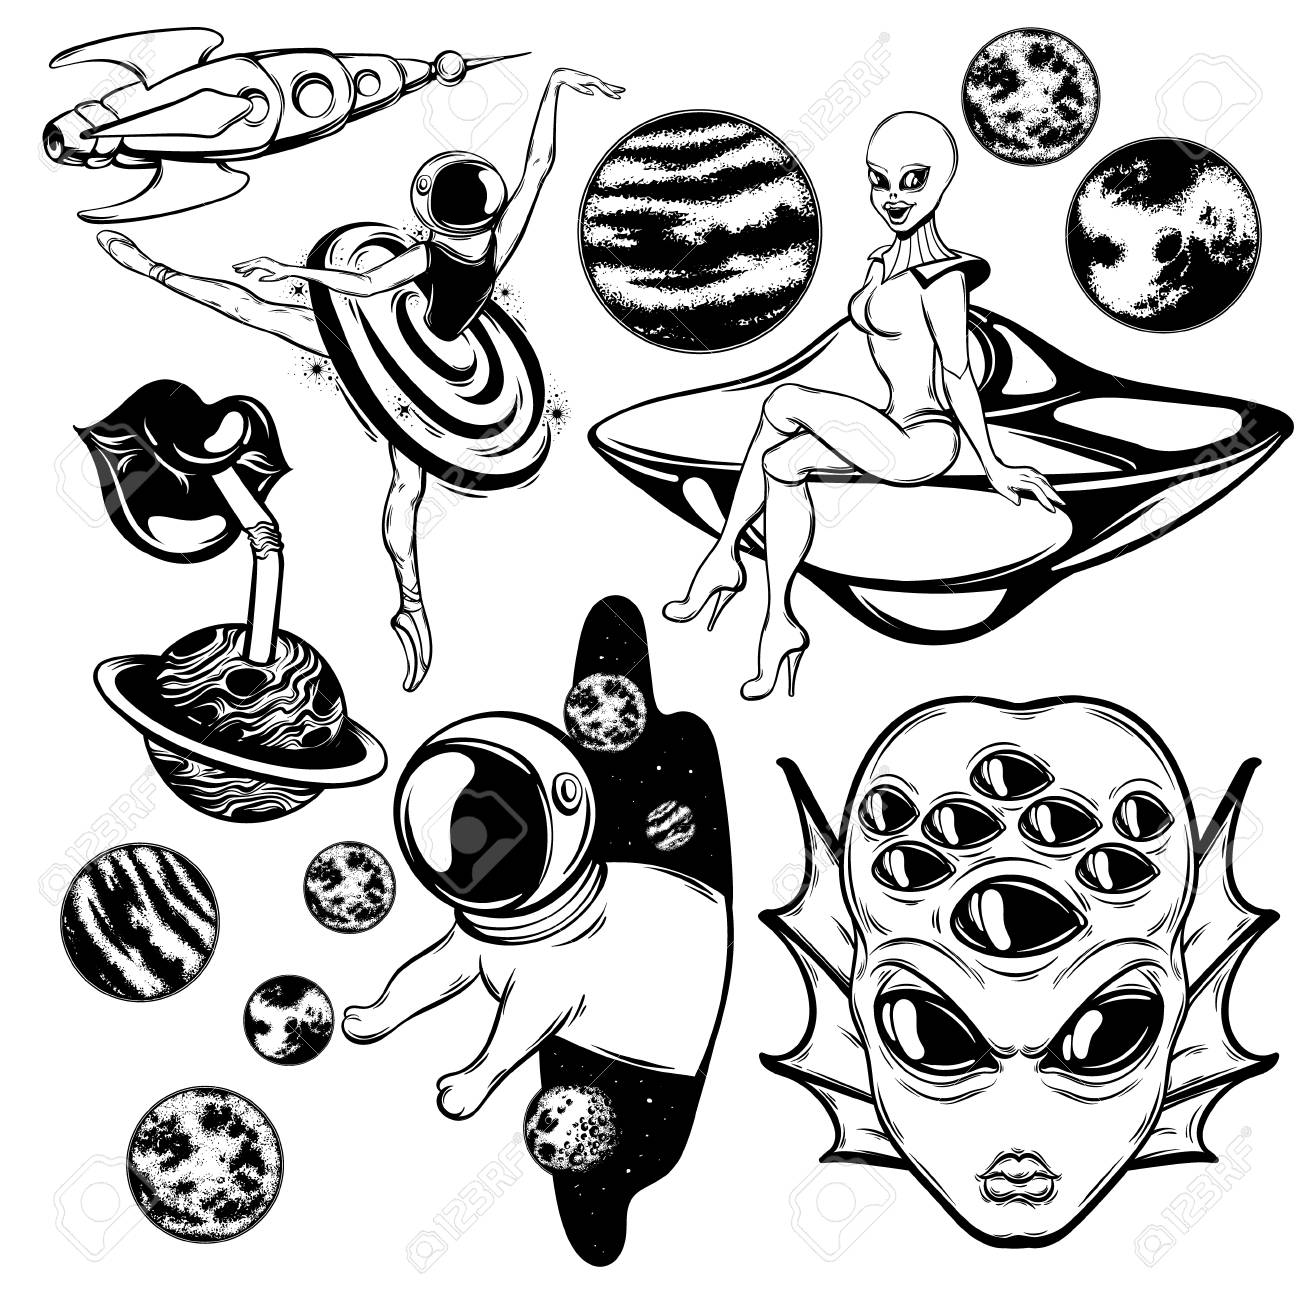 Vector Set Of Hand Drawn Illustrations Of Ballerina Flying Saucer Royalty Free Cliparts Vectors And Stock Illustration Image 113007625